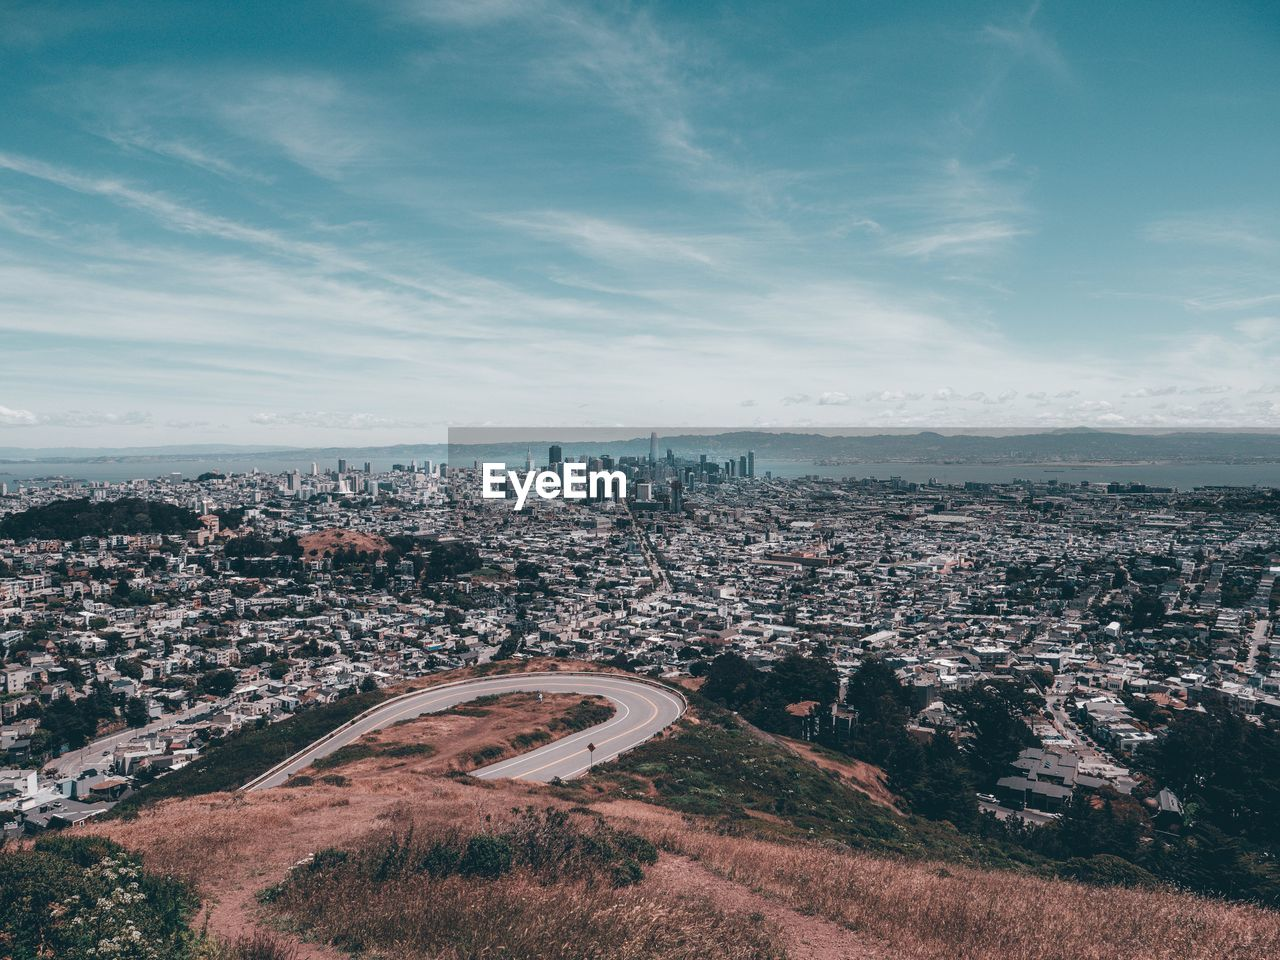 building exterior, architecture, built structure, city, cityscape, sky, cloud - sky, nature, high angle view, building, day, no people, residential district, aerial view, outdoors, environment, plant, landscape, townscape